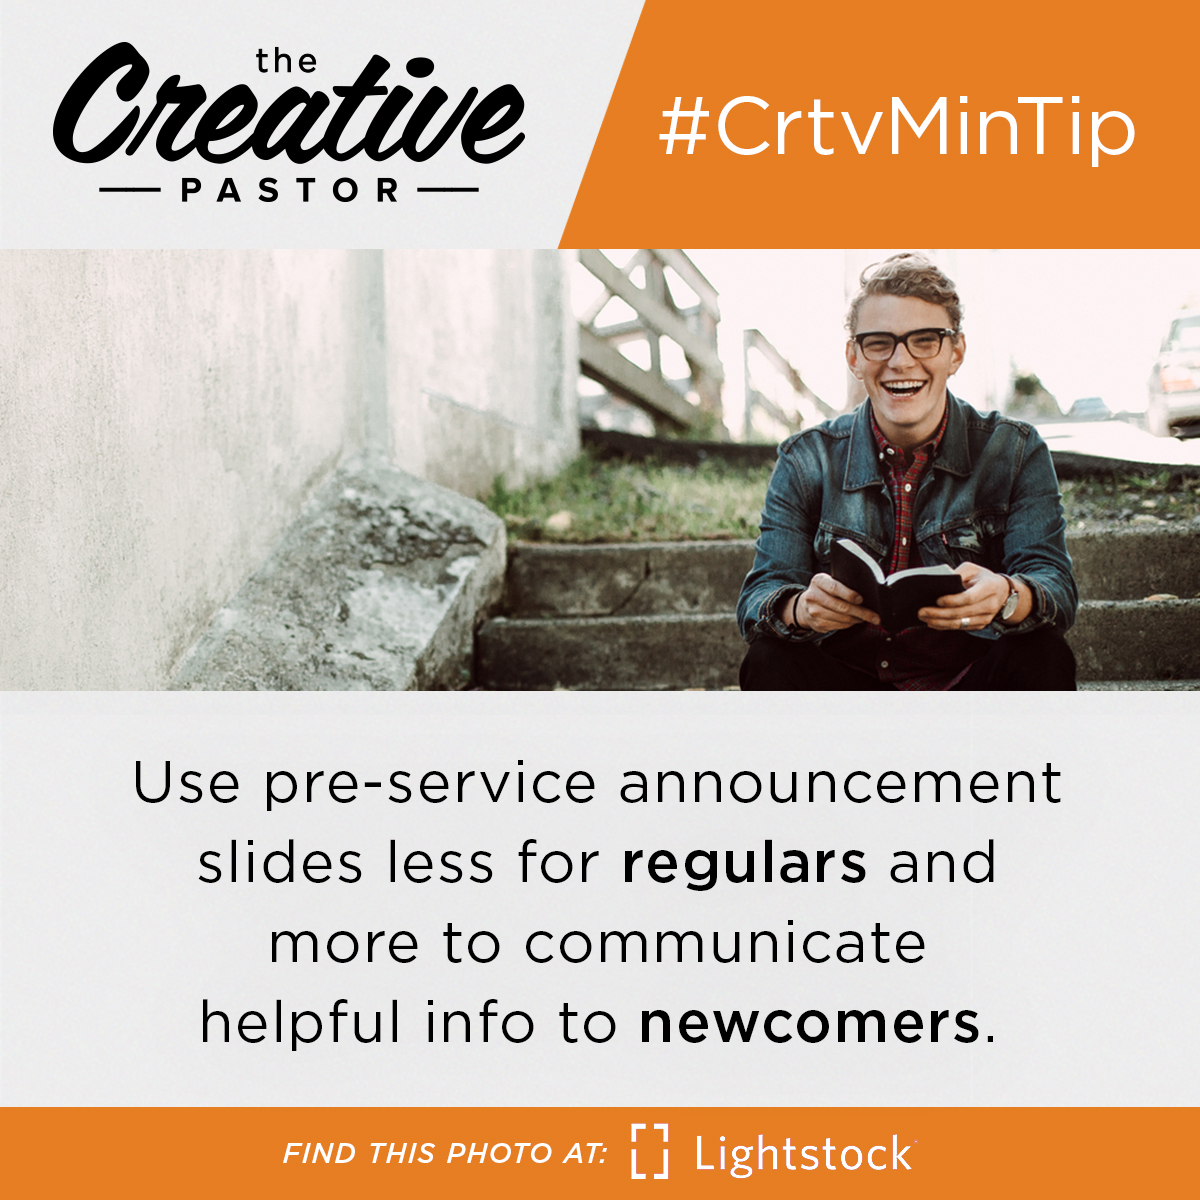 #CrtvMinTip: Use pre-service announcement slides less for regulars and more to communicate helpful info to newcomers.